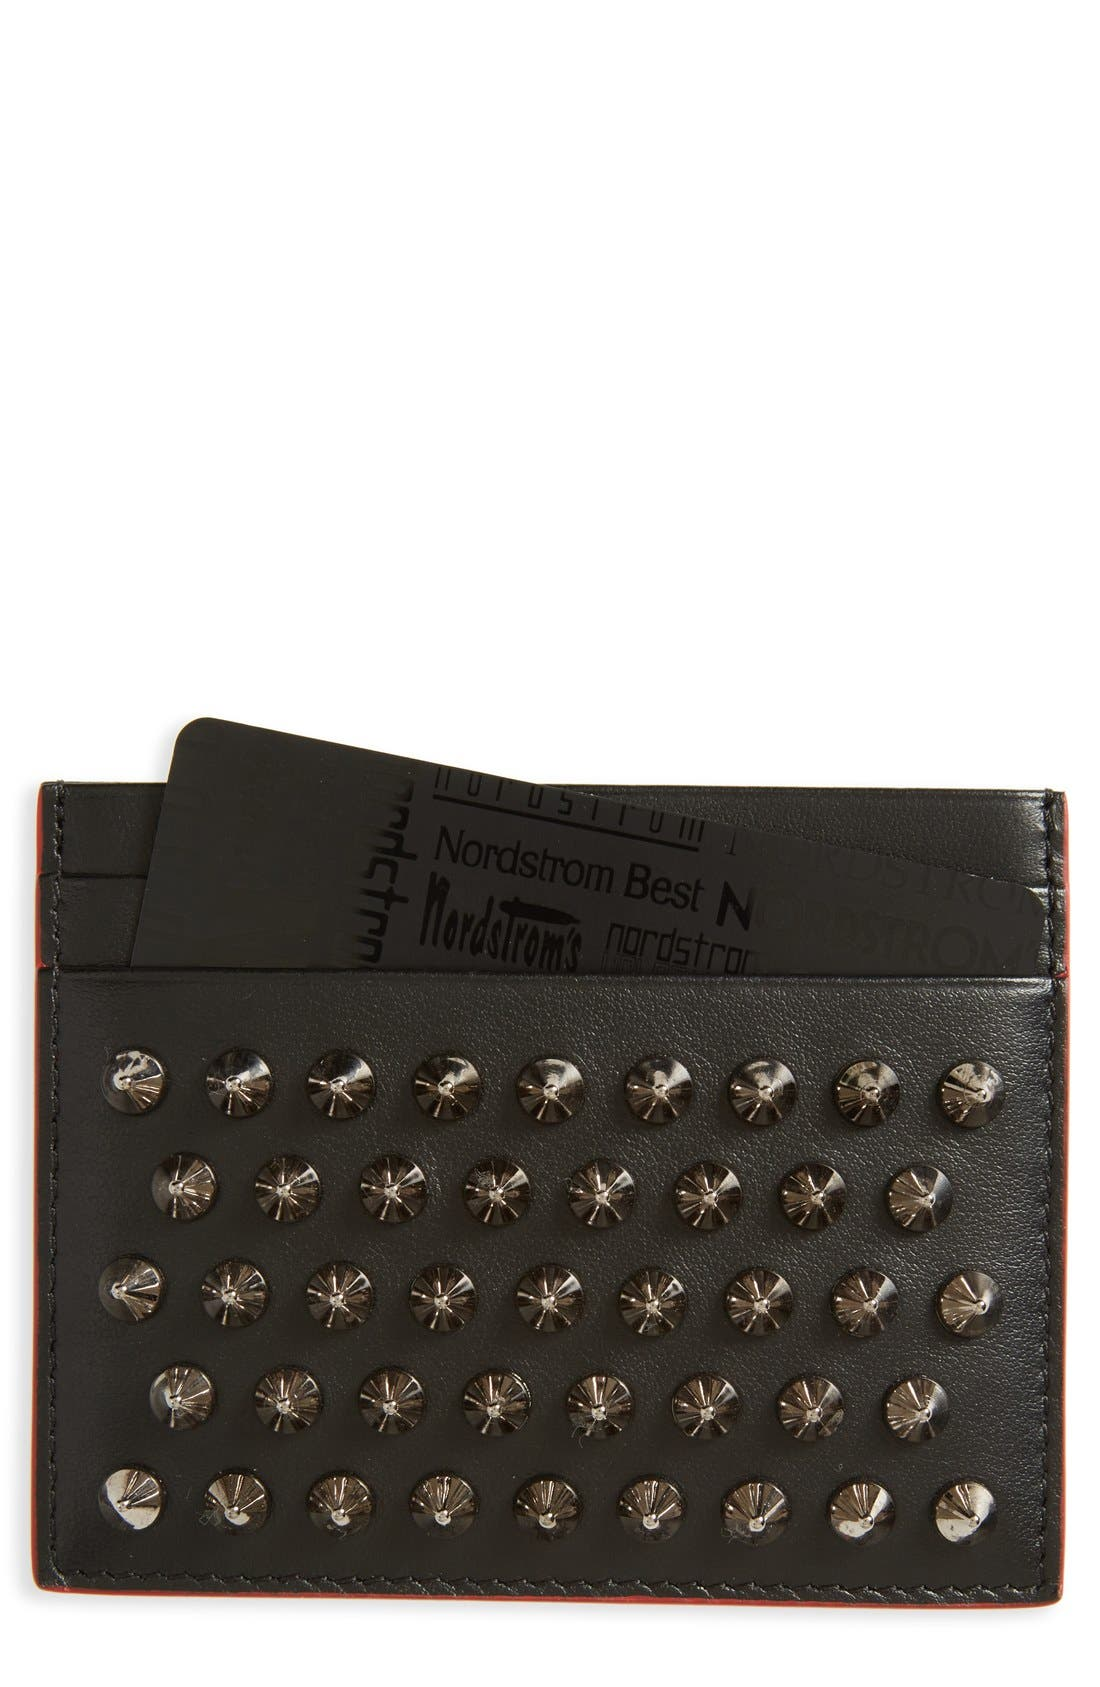 Main Image - Christian Louboutin 'Kios' Spiked Calfskin Leather Card Case